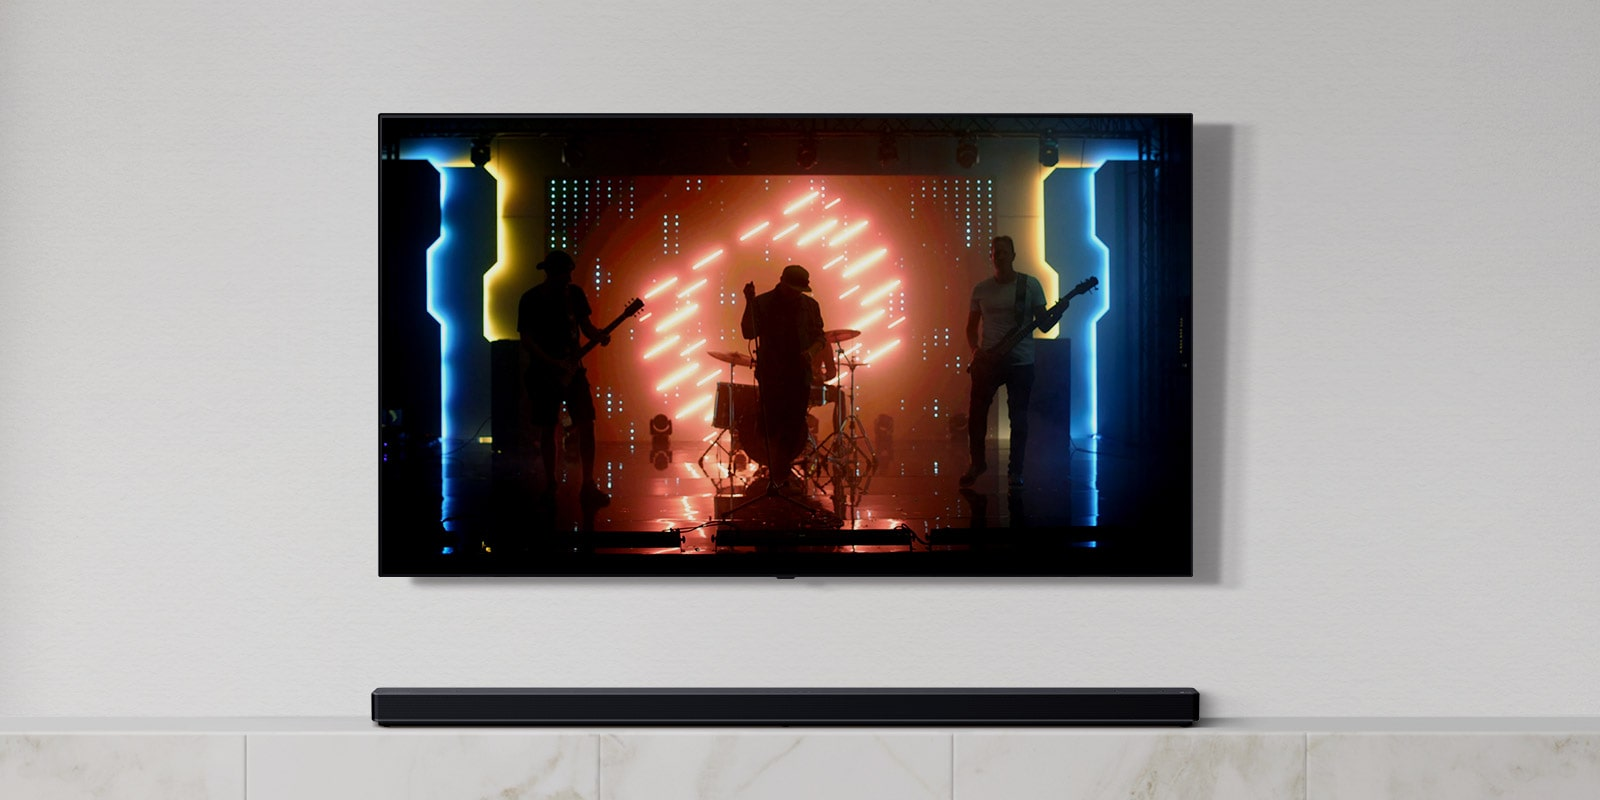 There is a TV and a soundbar in white living room. A group of band playing instruments and singing song on a TV screen. (play the video)